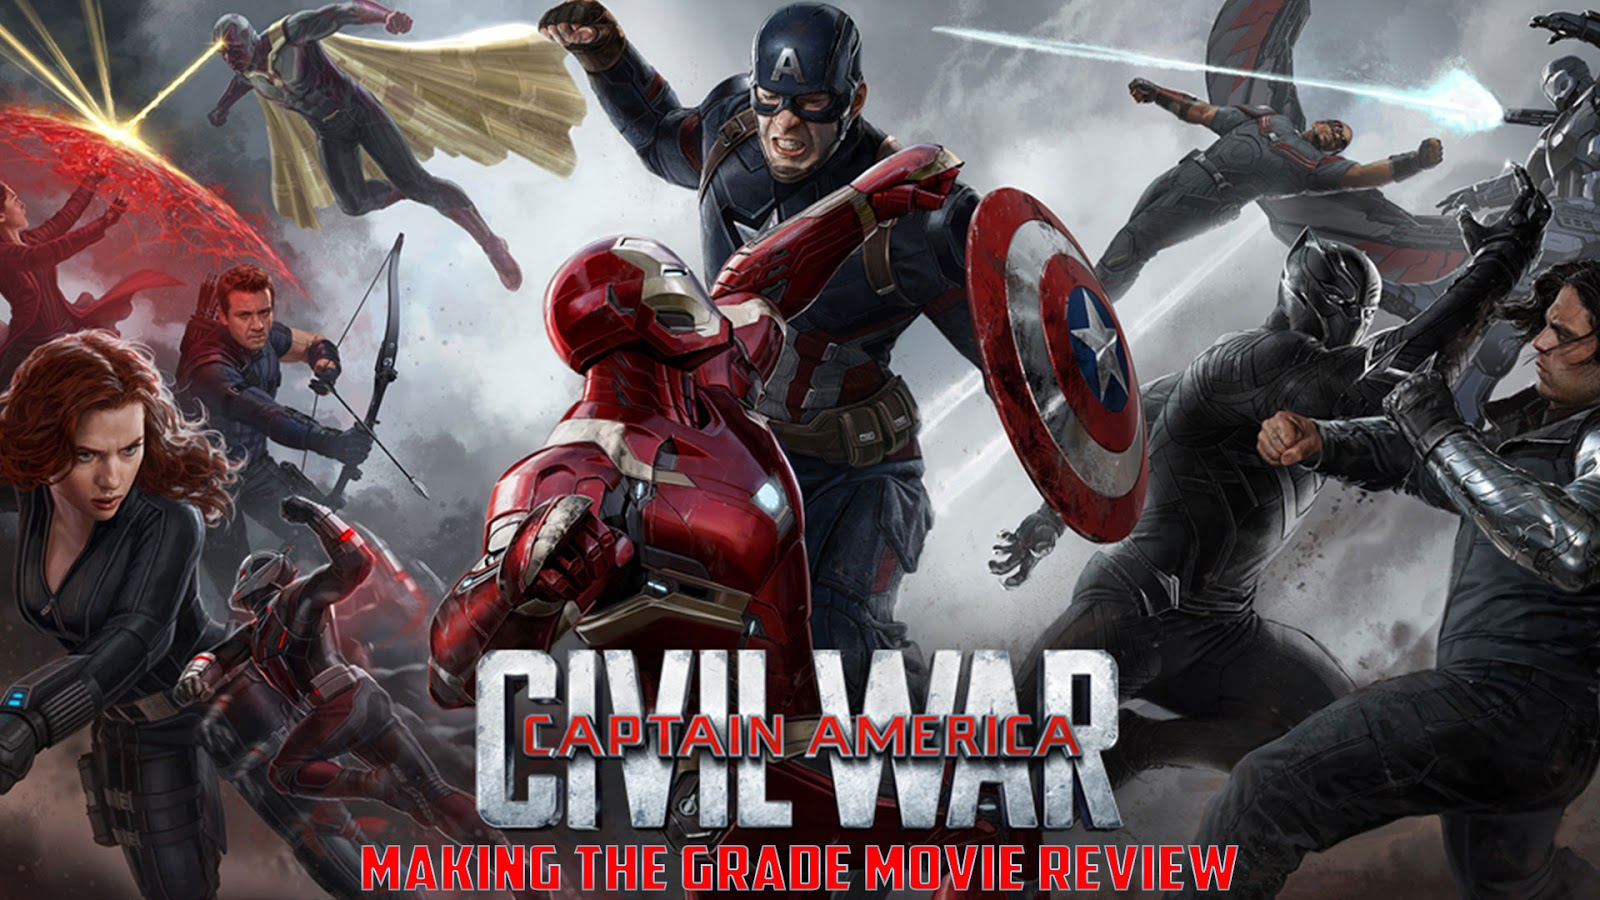 HD Captain America: Civil War photos screen shots poster